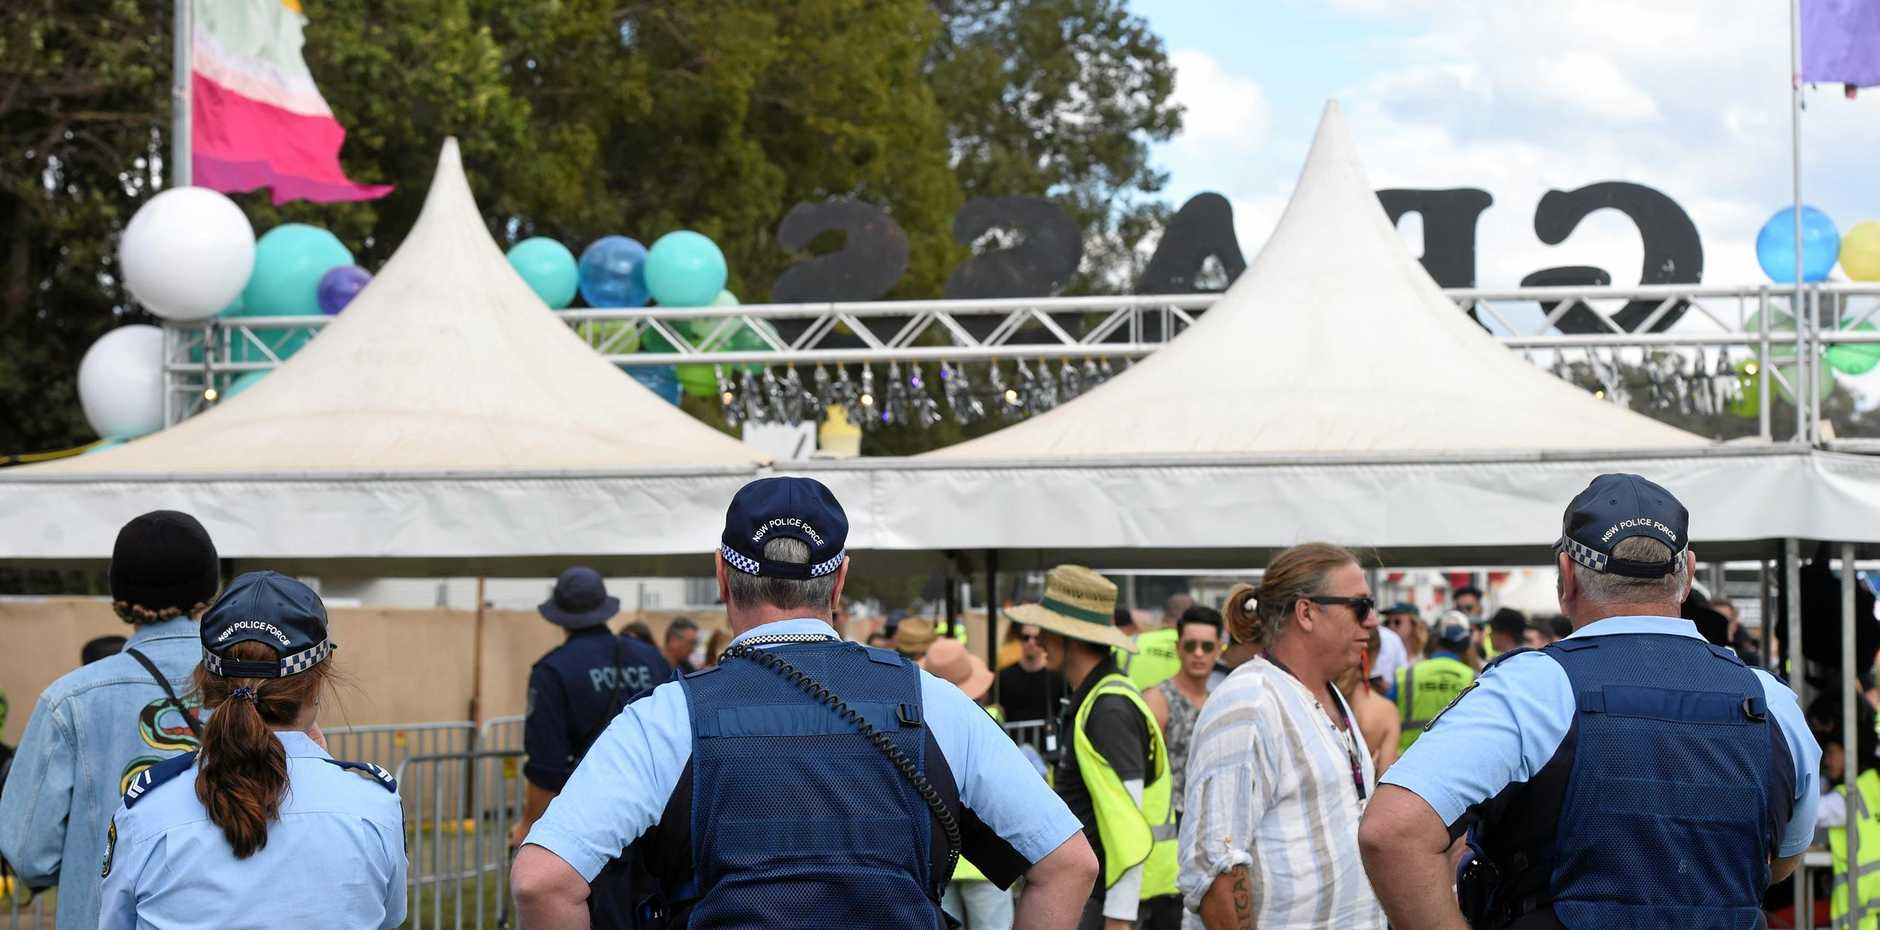 STRIP SEARCH: As the Law Enforcement Conduct Commission continues its investigation of an incident which involved the search on the 16-year-old girl, at a Byron Bay festival in 2018 to see if police acted unlawfully, or whether their conduct amounted to serious misconduct, politicians on sides debated the ethics of the situation.